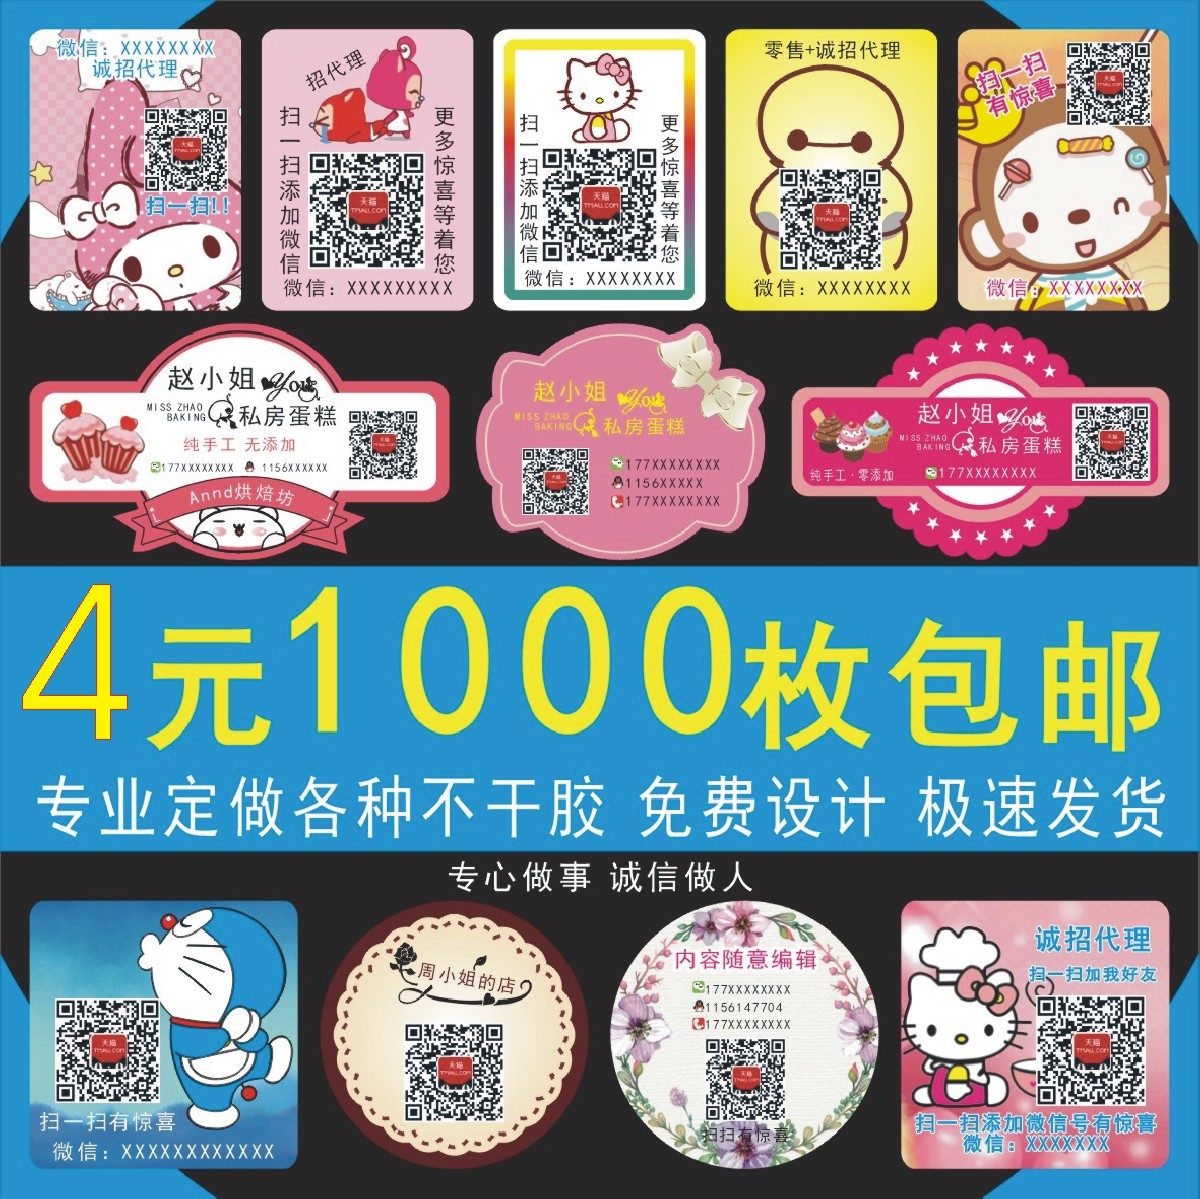 Buy wechat dimensional code stickers custom matte silver sticker printing custom stickers affixed label bottles in cheap price on alibaba com